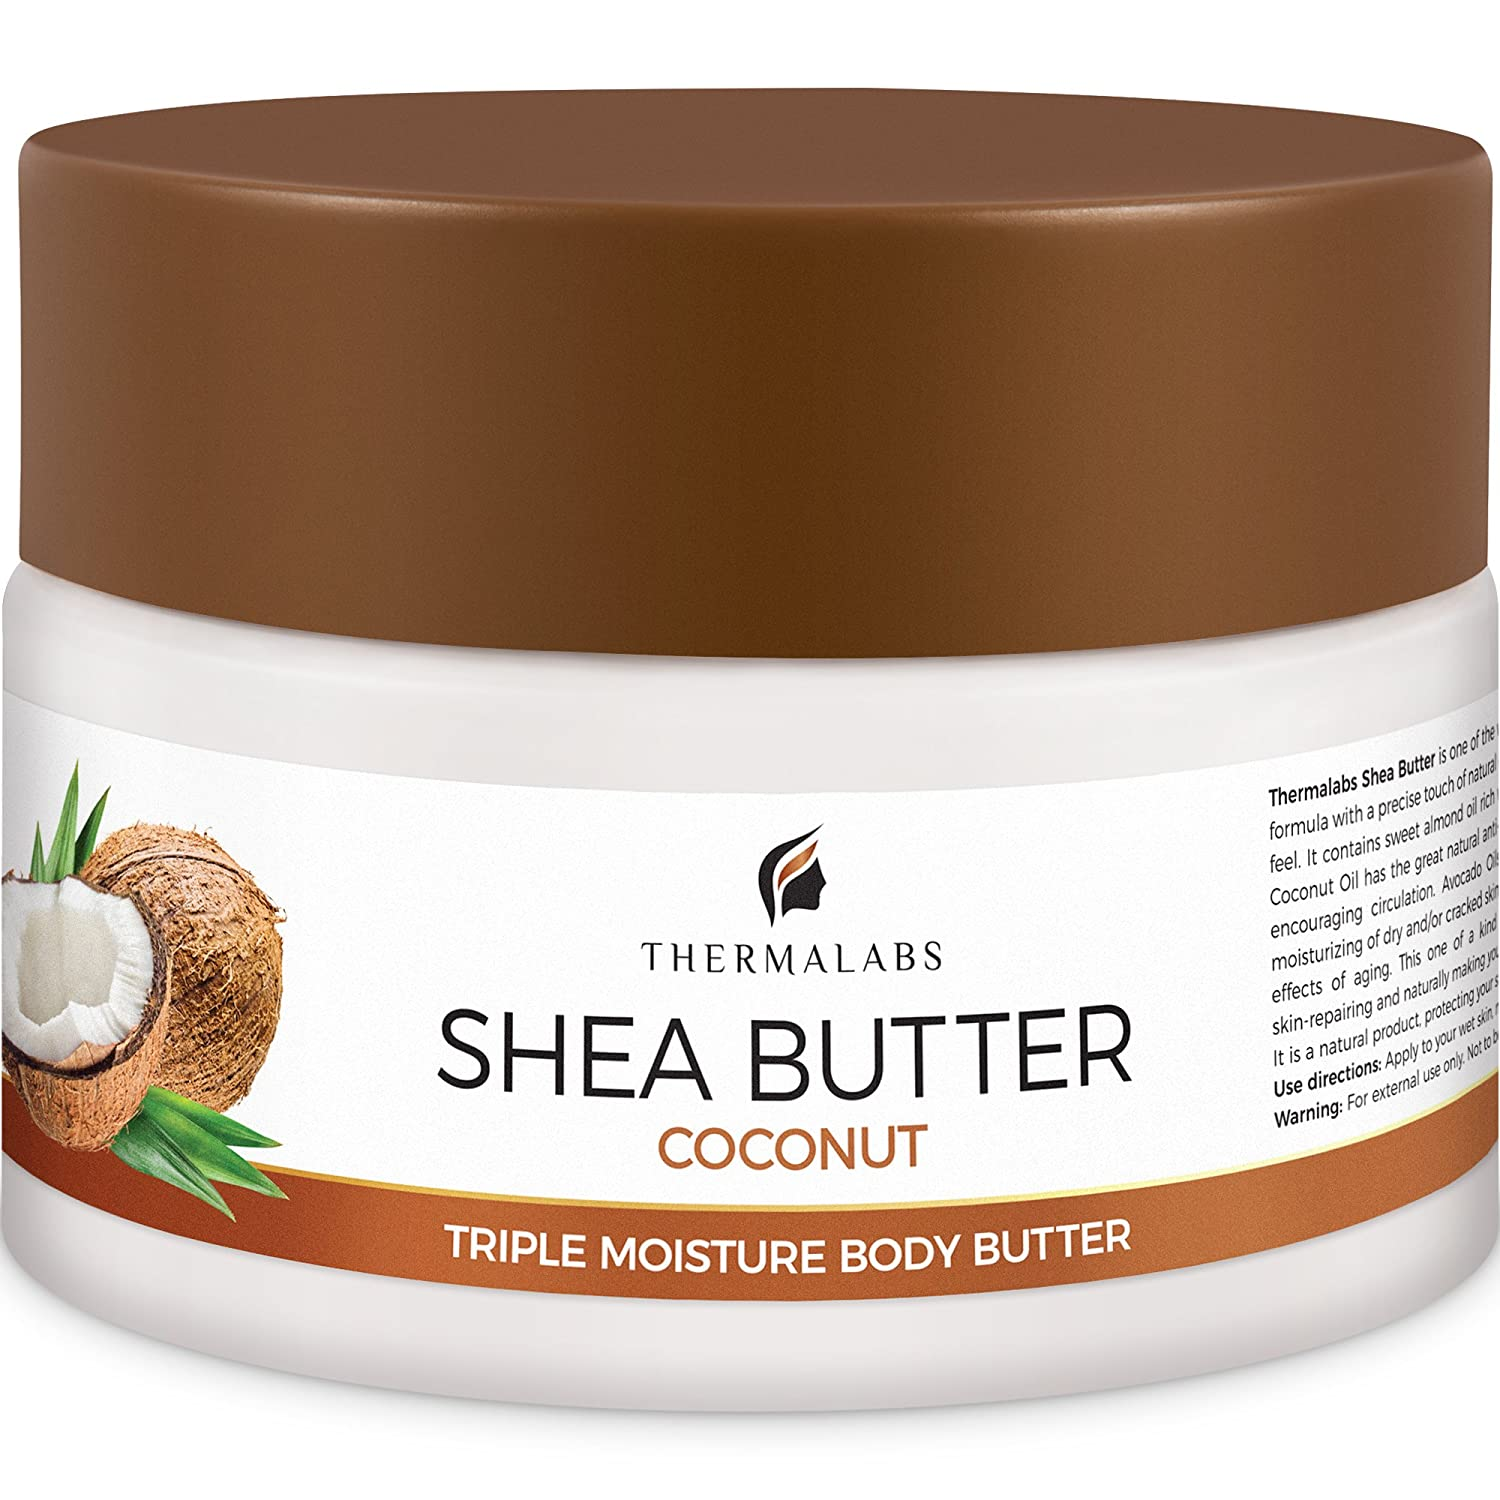 Shea Butter for Body, Stretch Marks Removal Cream: Feel Silky Smooth! Moisturizer for Dry Skin, Eczema Treatment, Pregnancy Belly Lotion with Natural & Organic Ingredients & Dead Sea Minerals (250 ml) Thermalabs